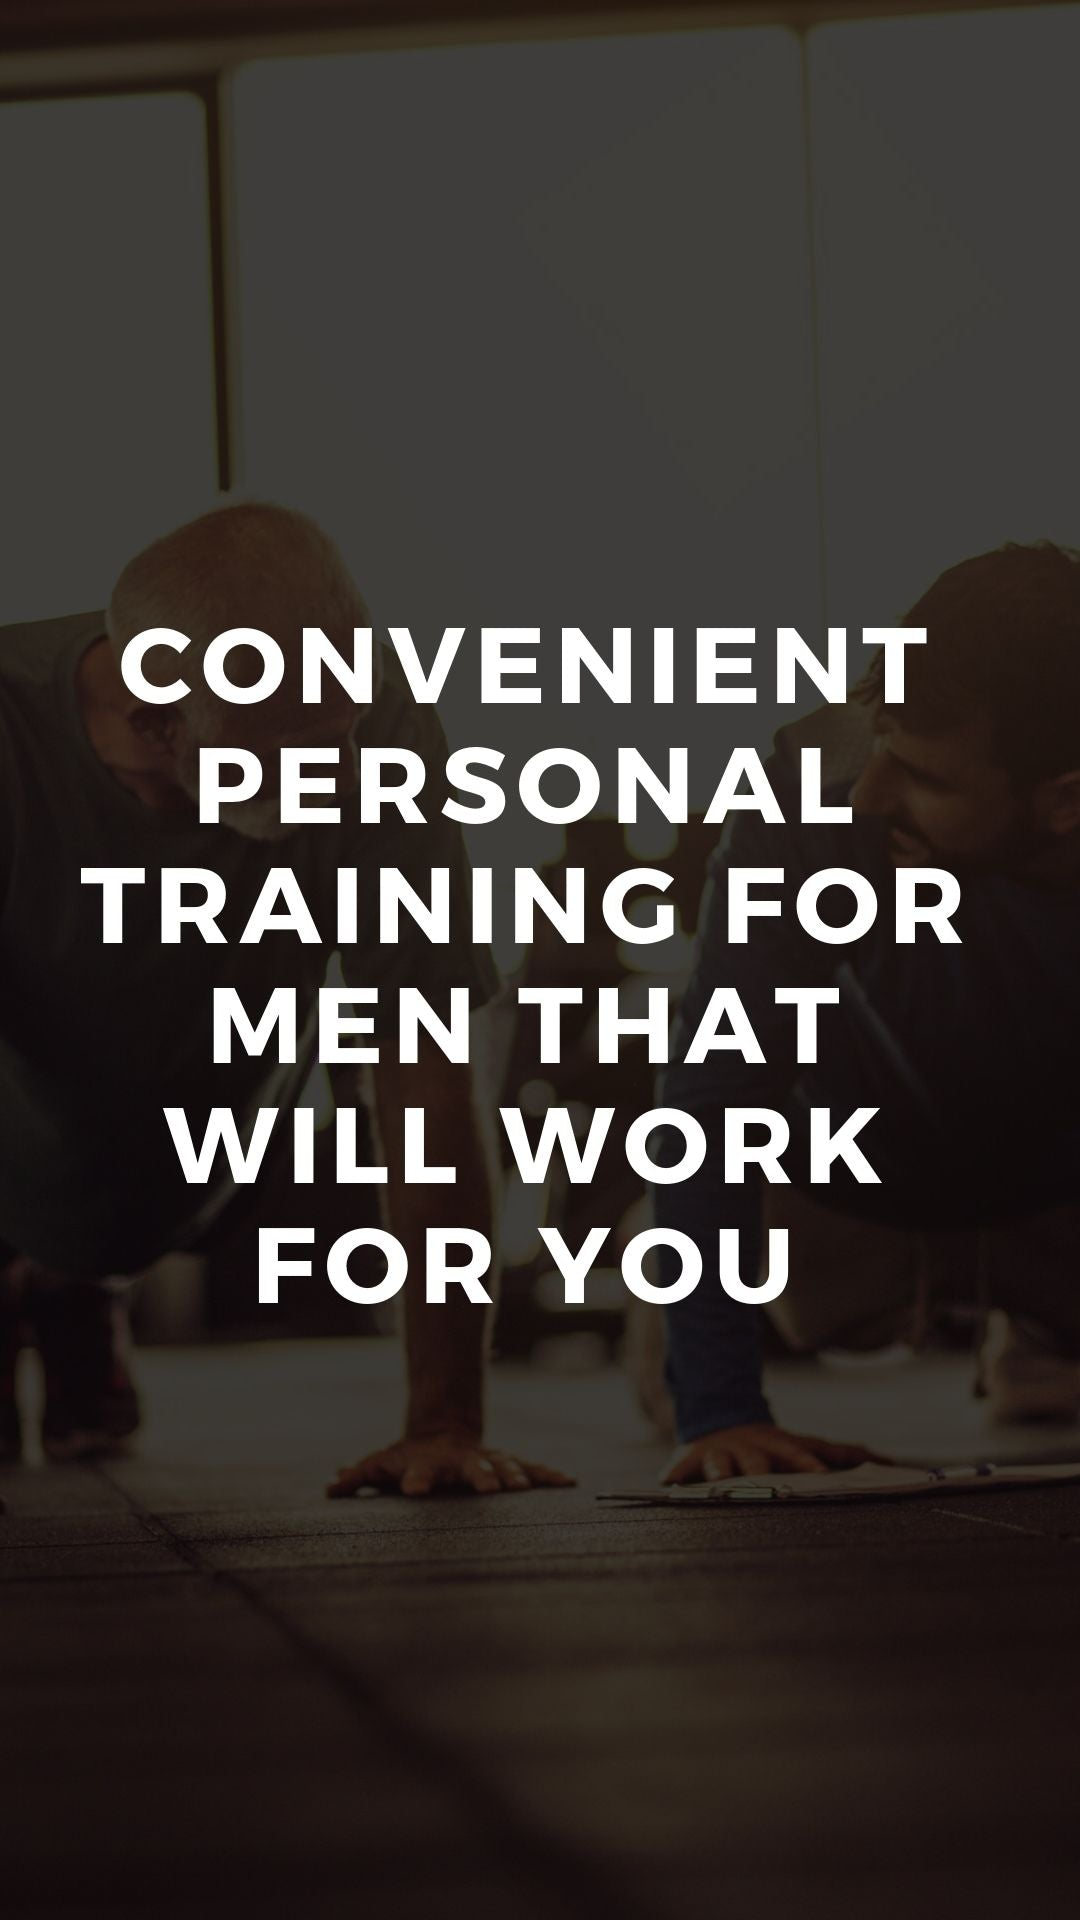 Convenient Personal Training for Men That Will Work for You